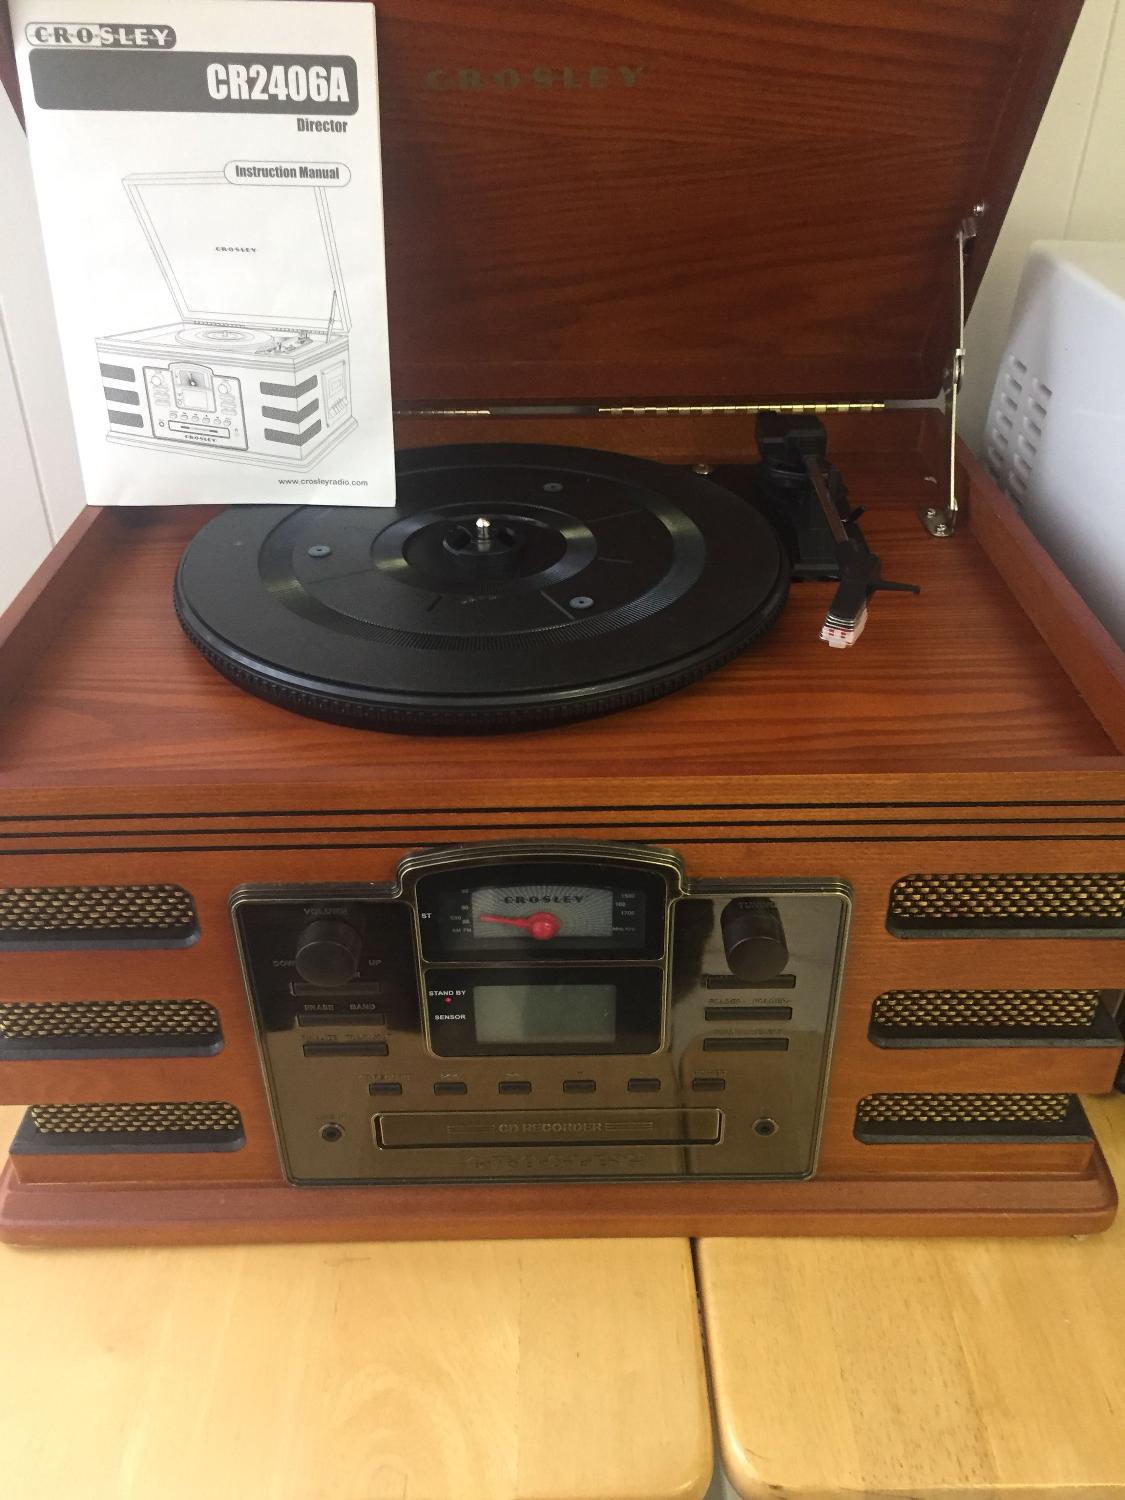 Find More Crosley Amfm Cassette Cd Player Record Player And